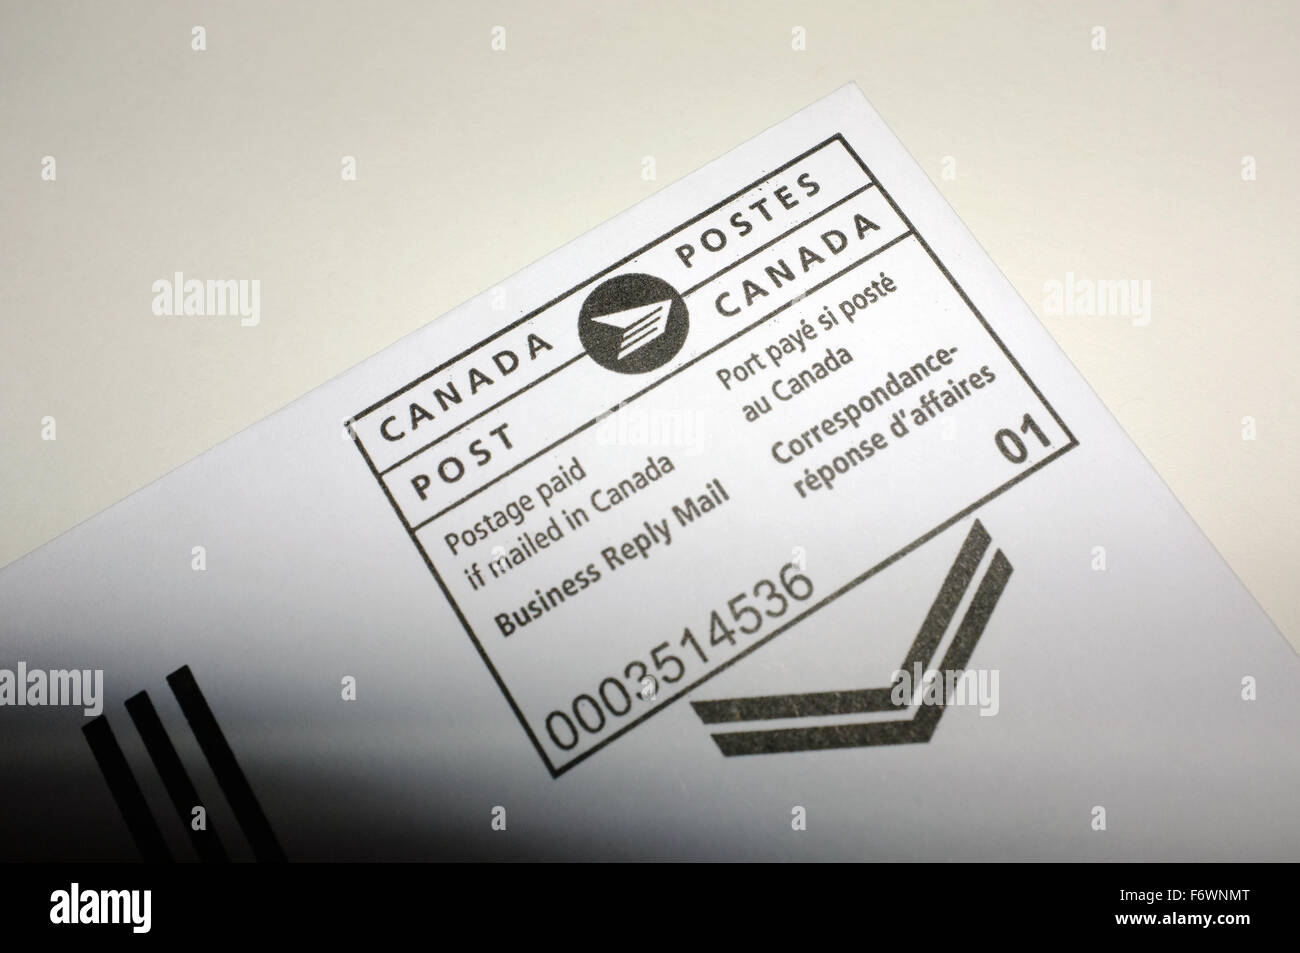 A Canada Post Postage Paid Stamp On A Letter Photographed Against A Stock Photo Alamy,Longhorn Parmesan Crusted Chicken Nutrition Recipe